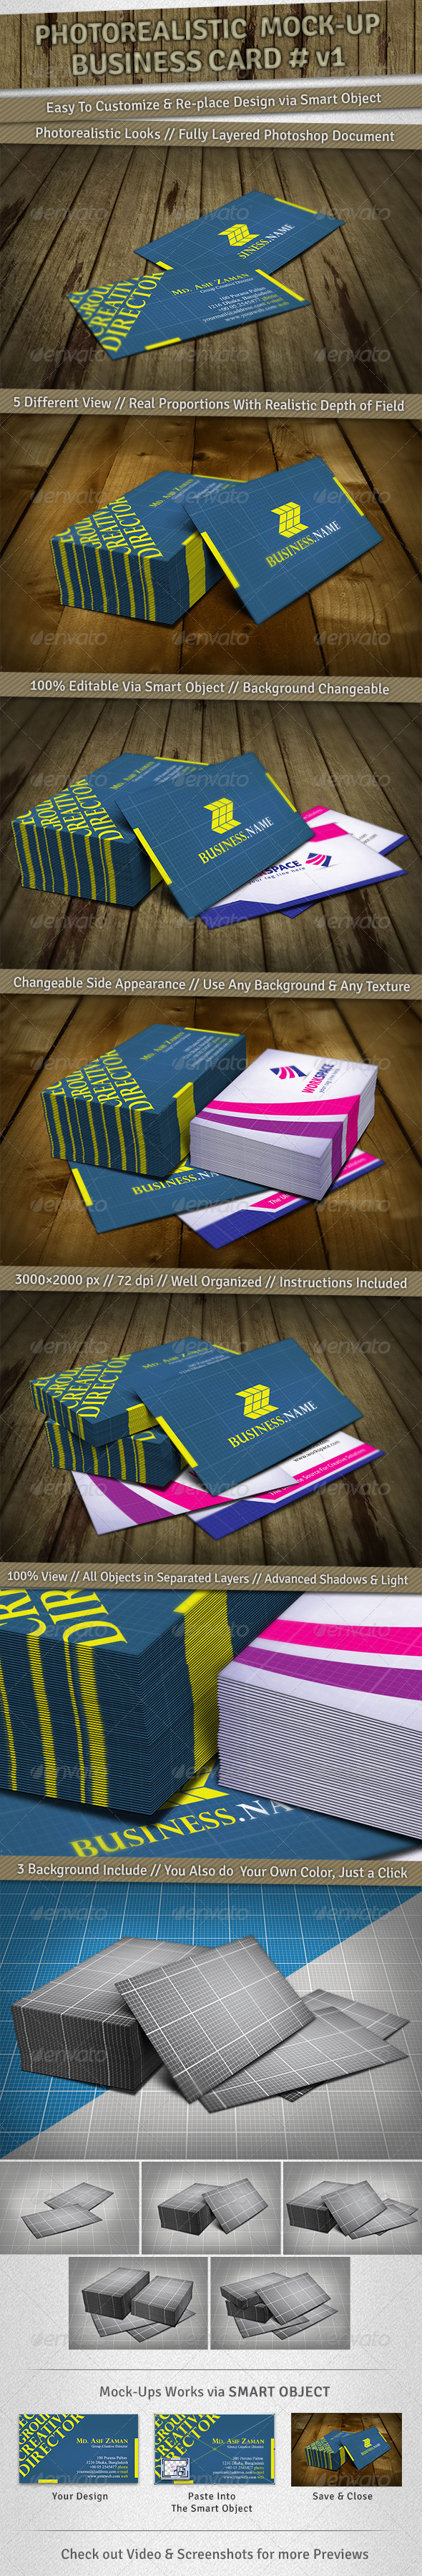 5 Mockup | Photorealistic Business Card v1 - Business Cards Print